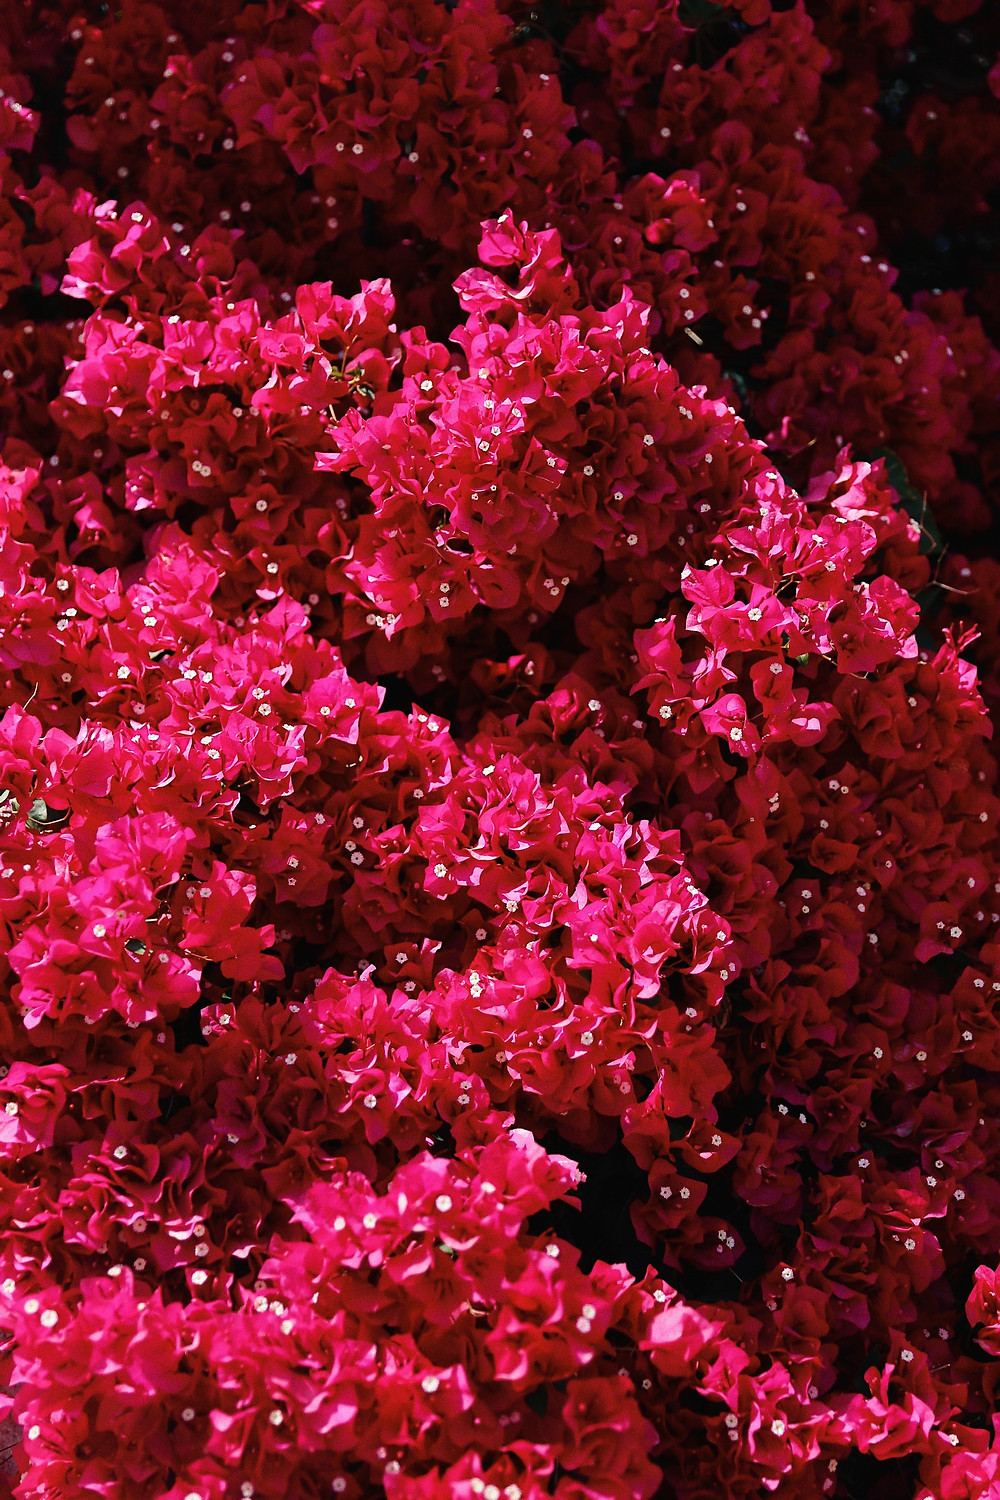 close up of pink flowers with a white middle and edge